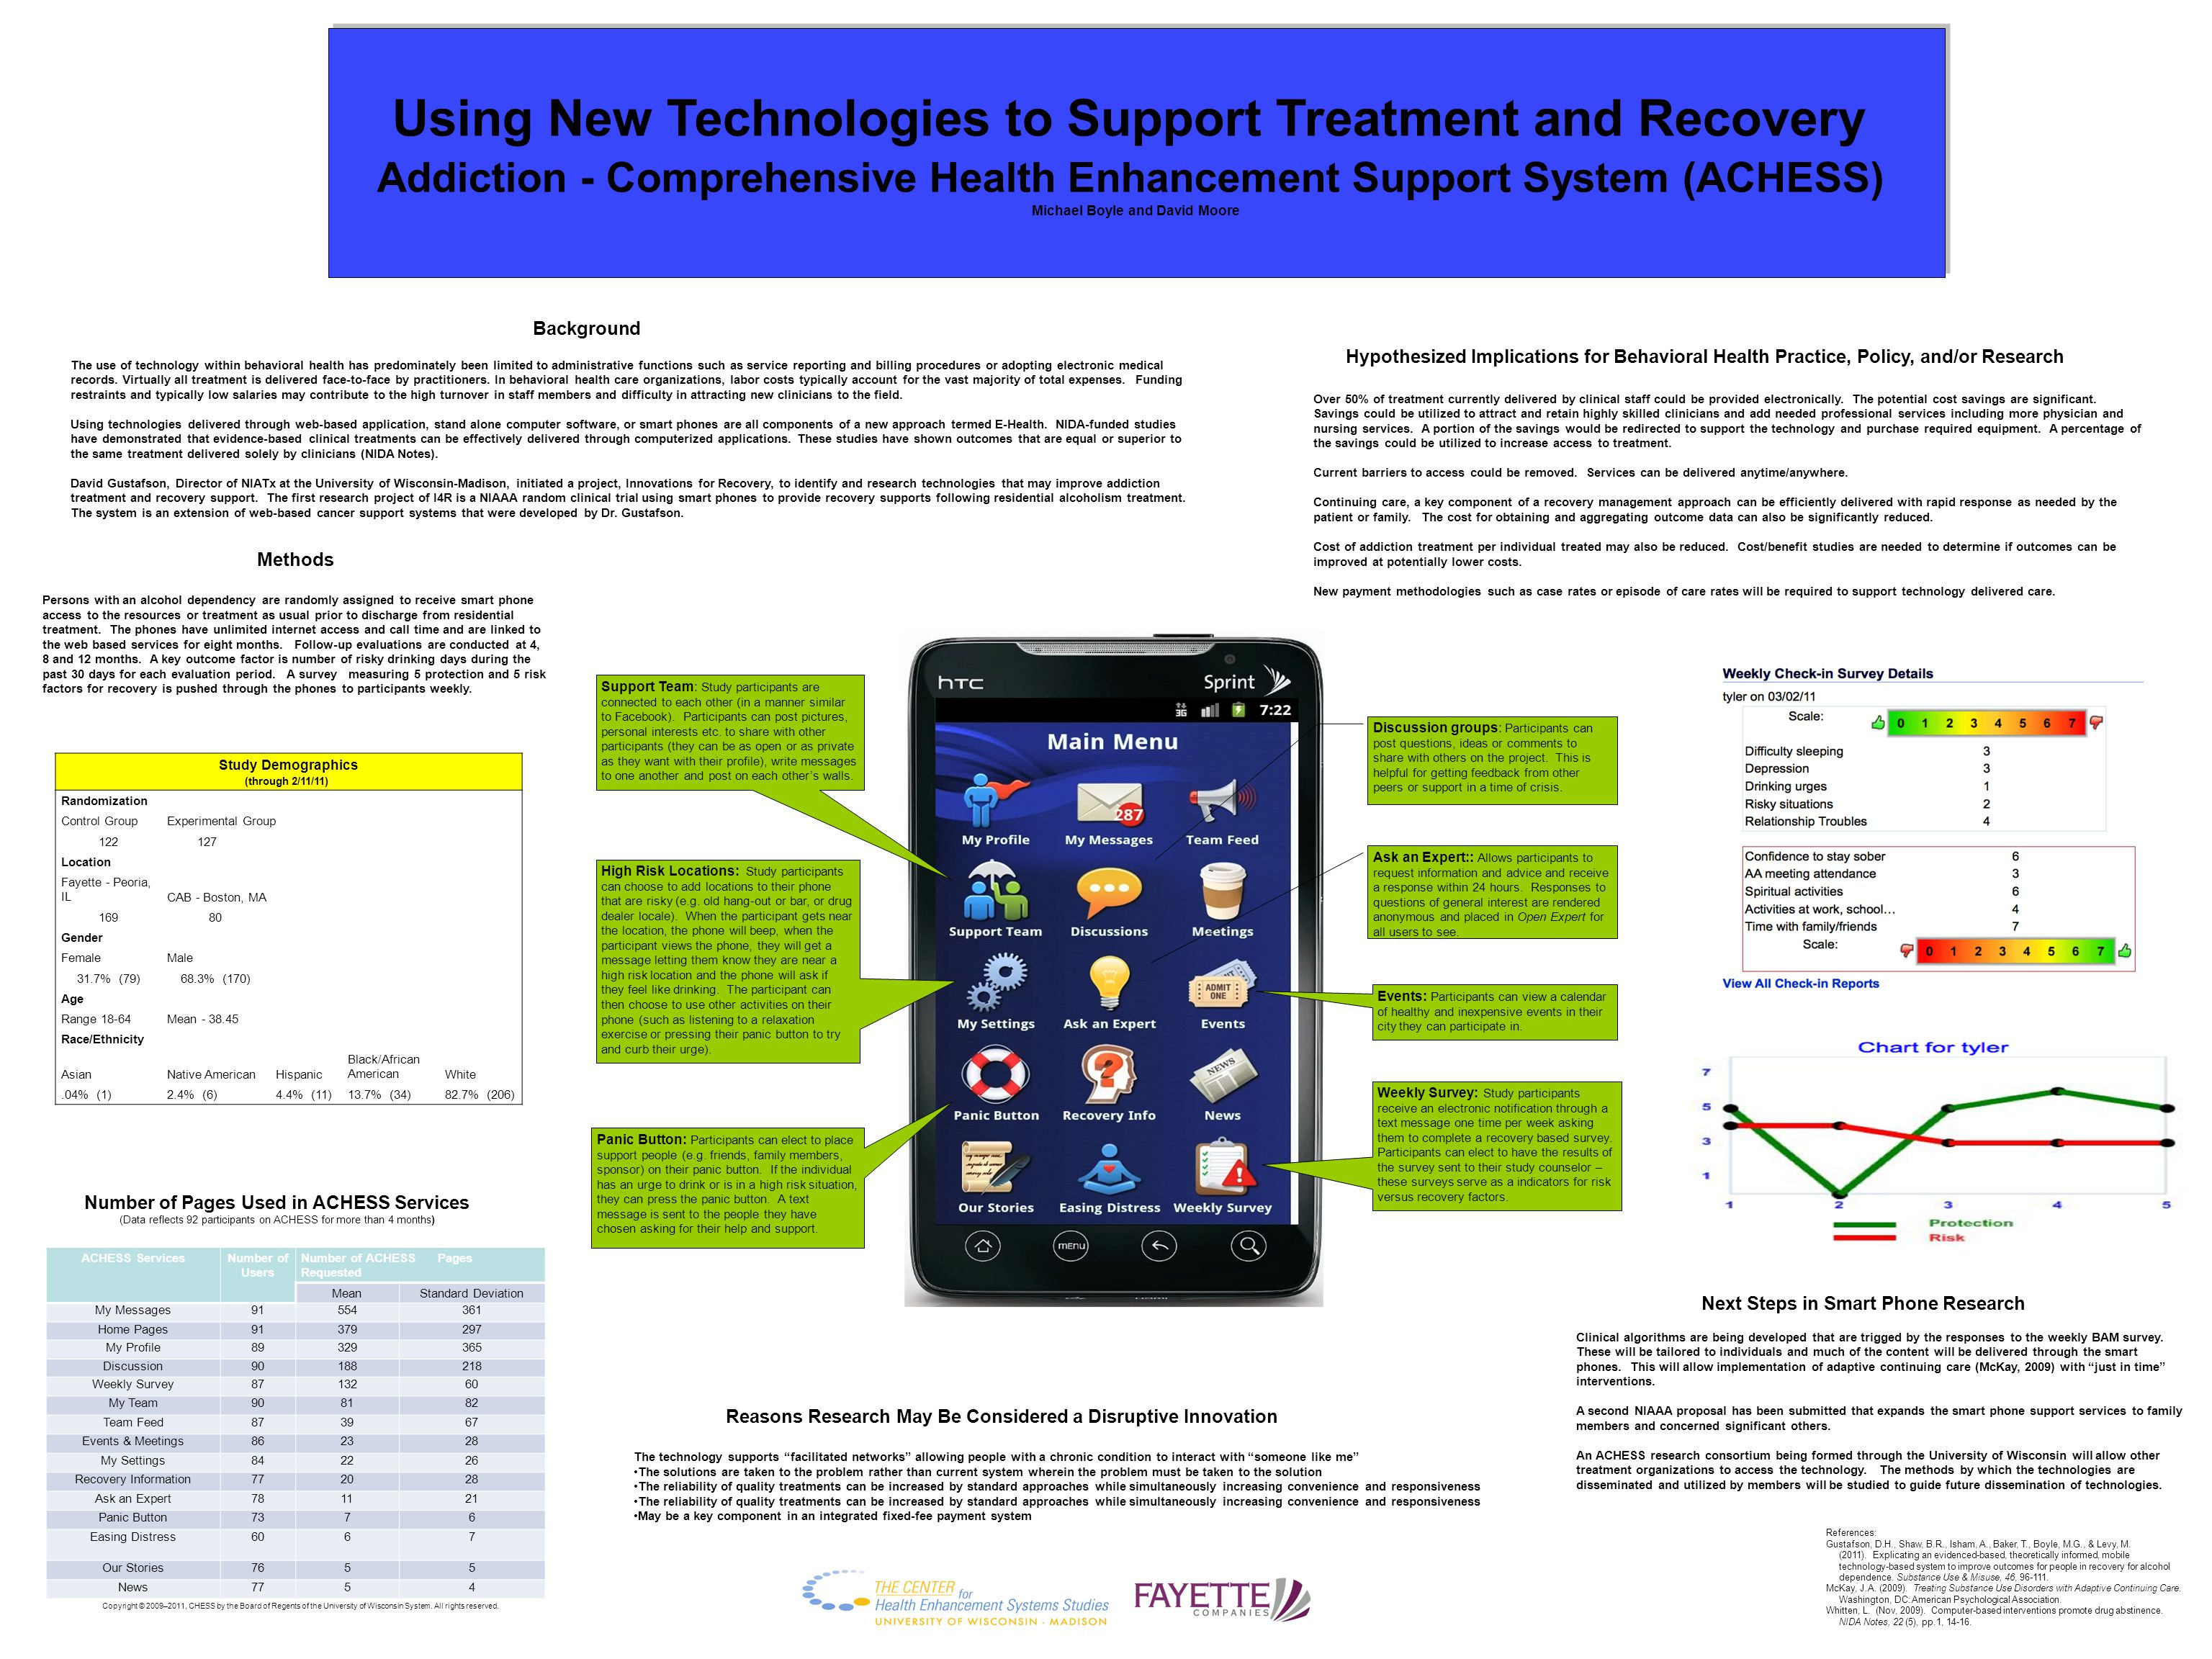 Using New Technologies to Support Treatment and Recovery Addiction - Comprehensive Health Enhancement Support System (ACHESS) Michael Boyle and David Moore Using New Technologies to Support Treatment and Recovery Addiction - Comprehensive Health Enhancement Support System (ACHESS) Michael Boyle and David Moore The use of technology within behavioral health has predominately been limited to administrative functions such as service reporting and billing procedures or adopting electronic medical records.